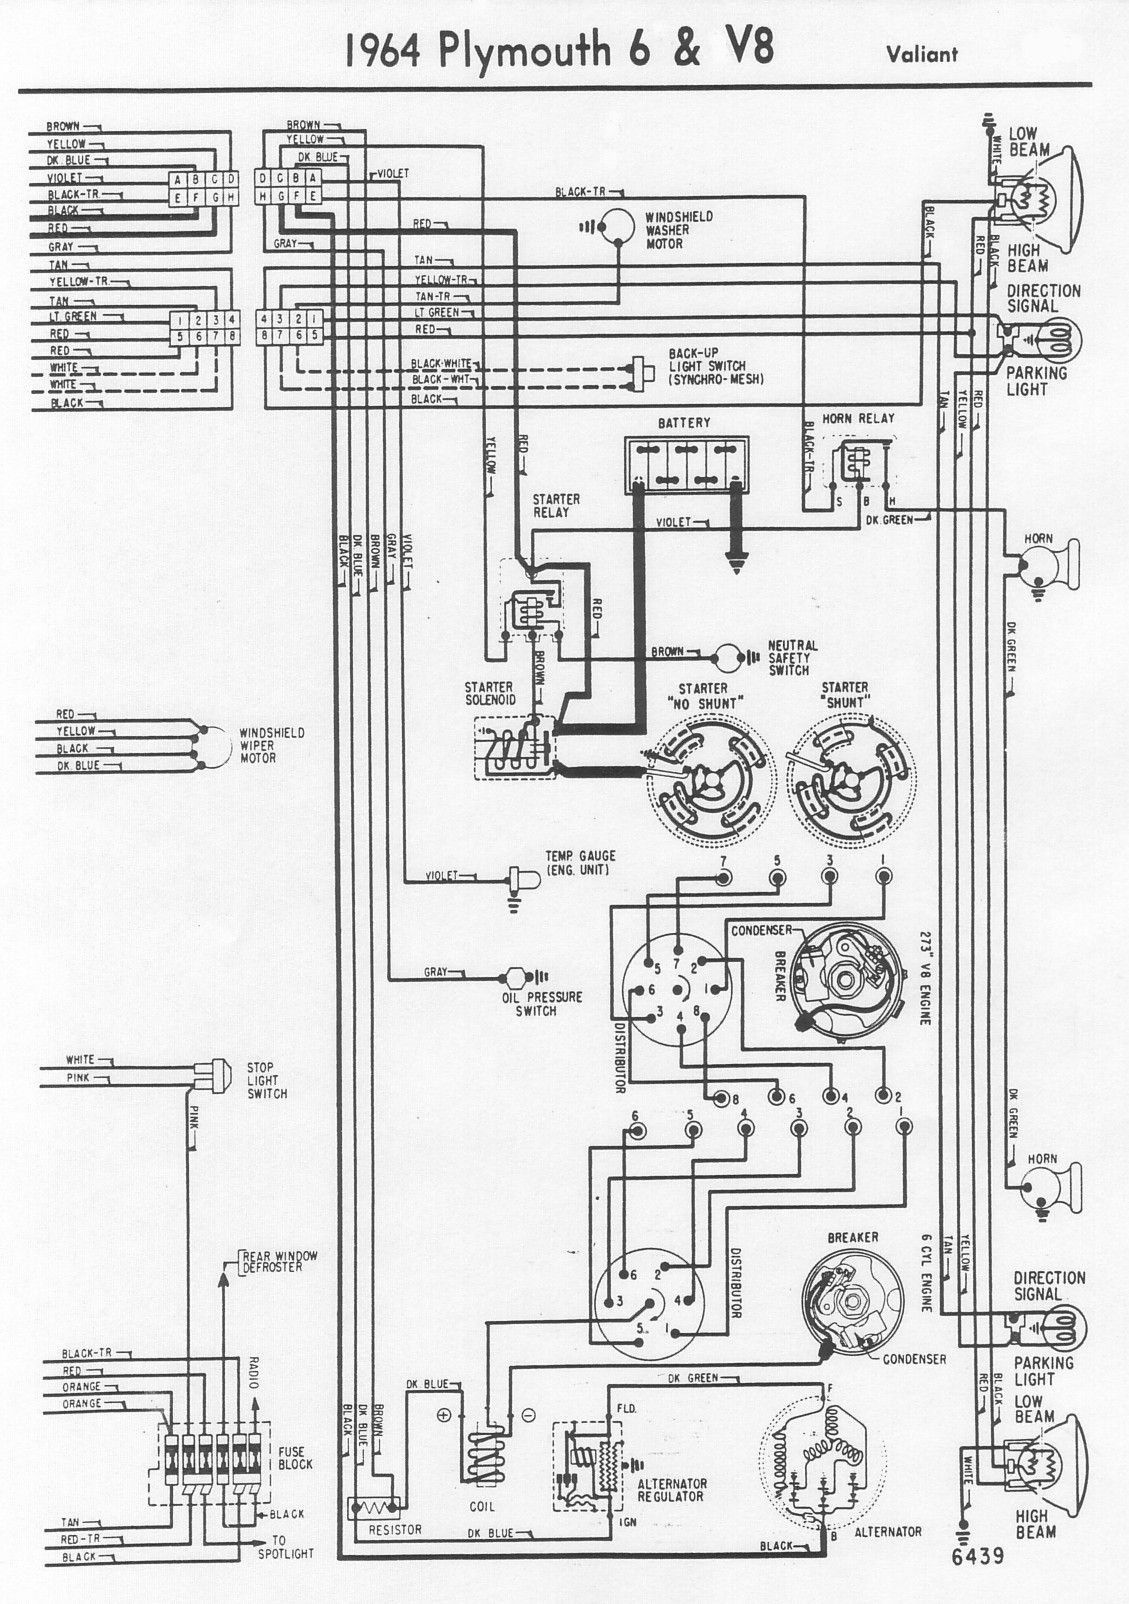 1973 plymouth barracuda fuse box diagram wiring diagram data schema 2015 plymouth barracuda 1966 plymouth barracuda fuse box wiring wiring diagram hub 1965 plymouth barracuda 1973 plymouth barracuda fuse box diagram